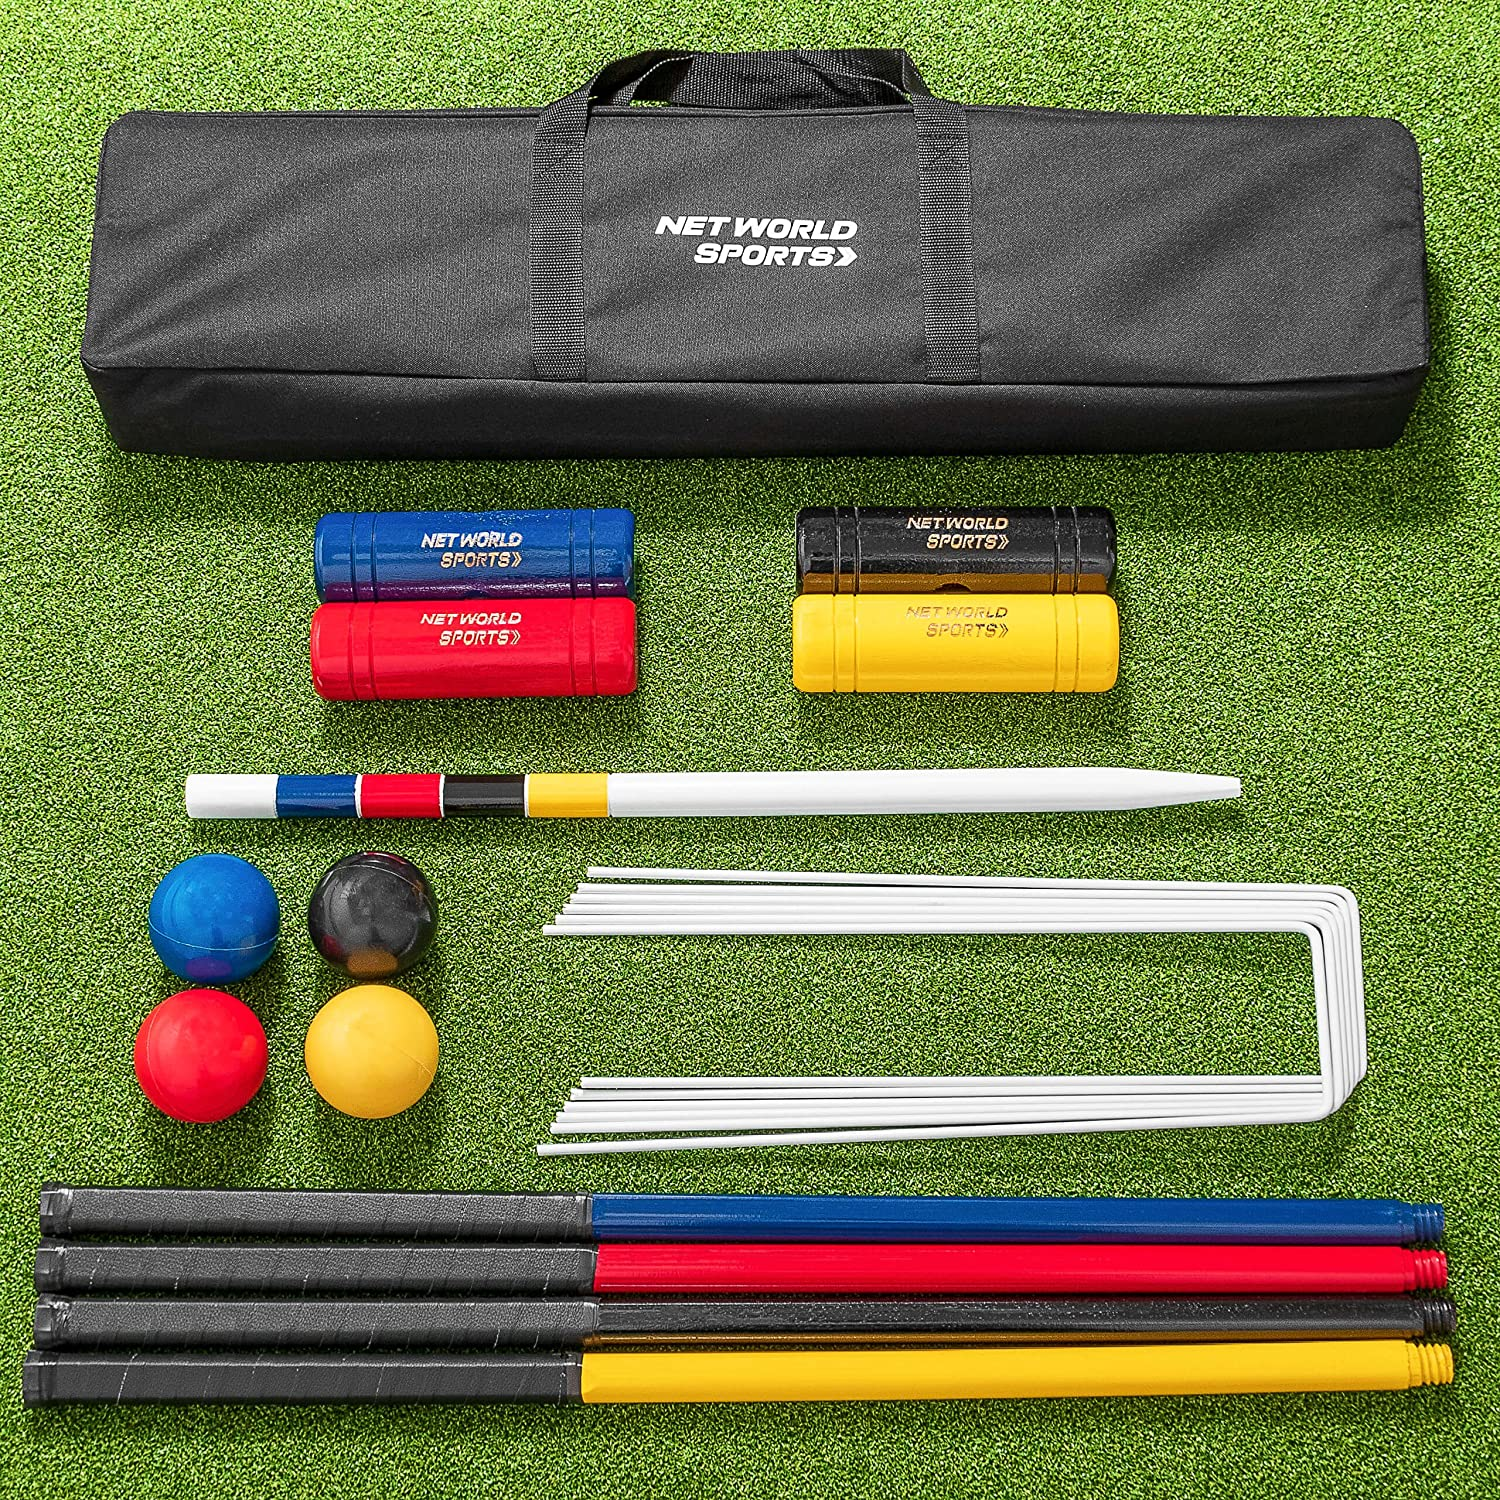 Net世界スポーツComplete 4 Person Croquet Set – フルサイズ木製Lawn Croquet Set従来Mallets、スチールフープ、クリップ、ボール、Winning Post、フラグ& Carry Holdall B07DCTJTCH